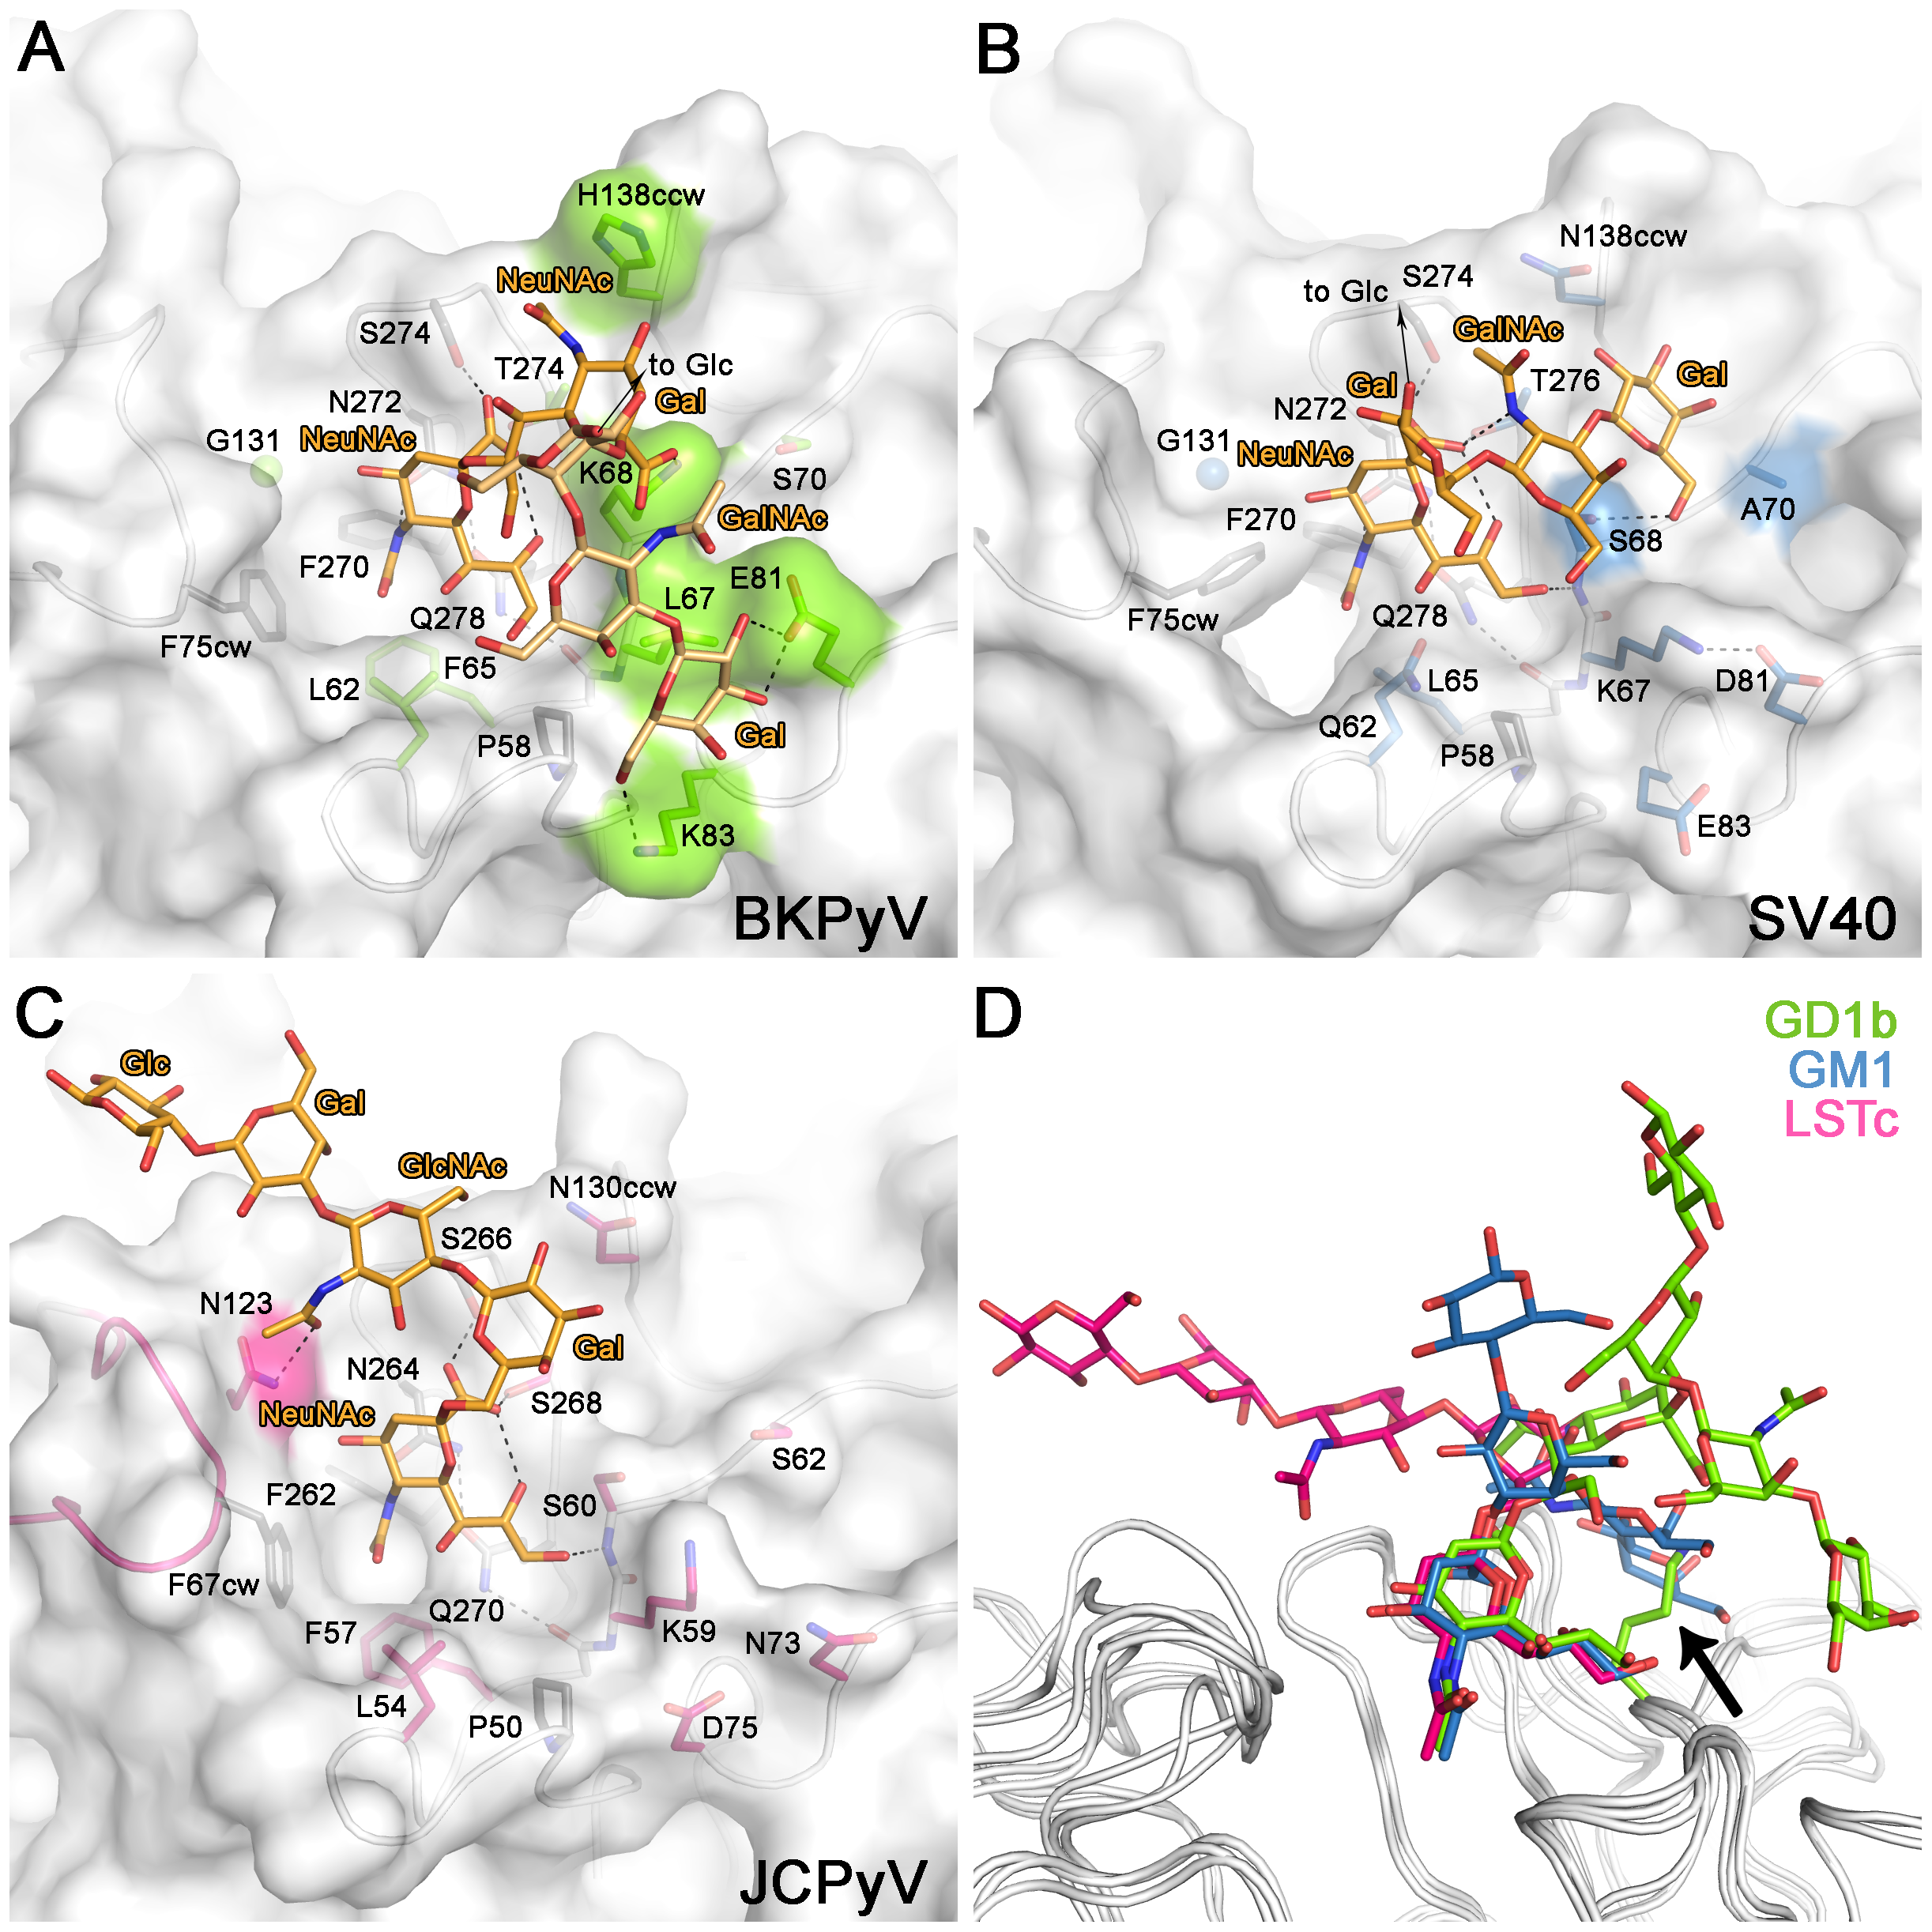 Carbohydrate binding sites of BKPyV, JCPyV and SV40.